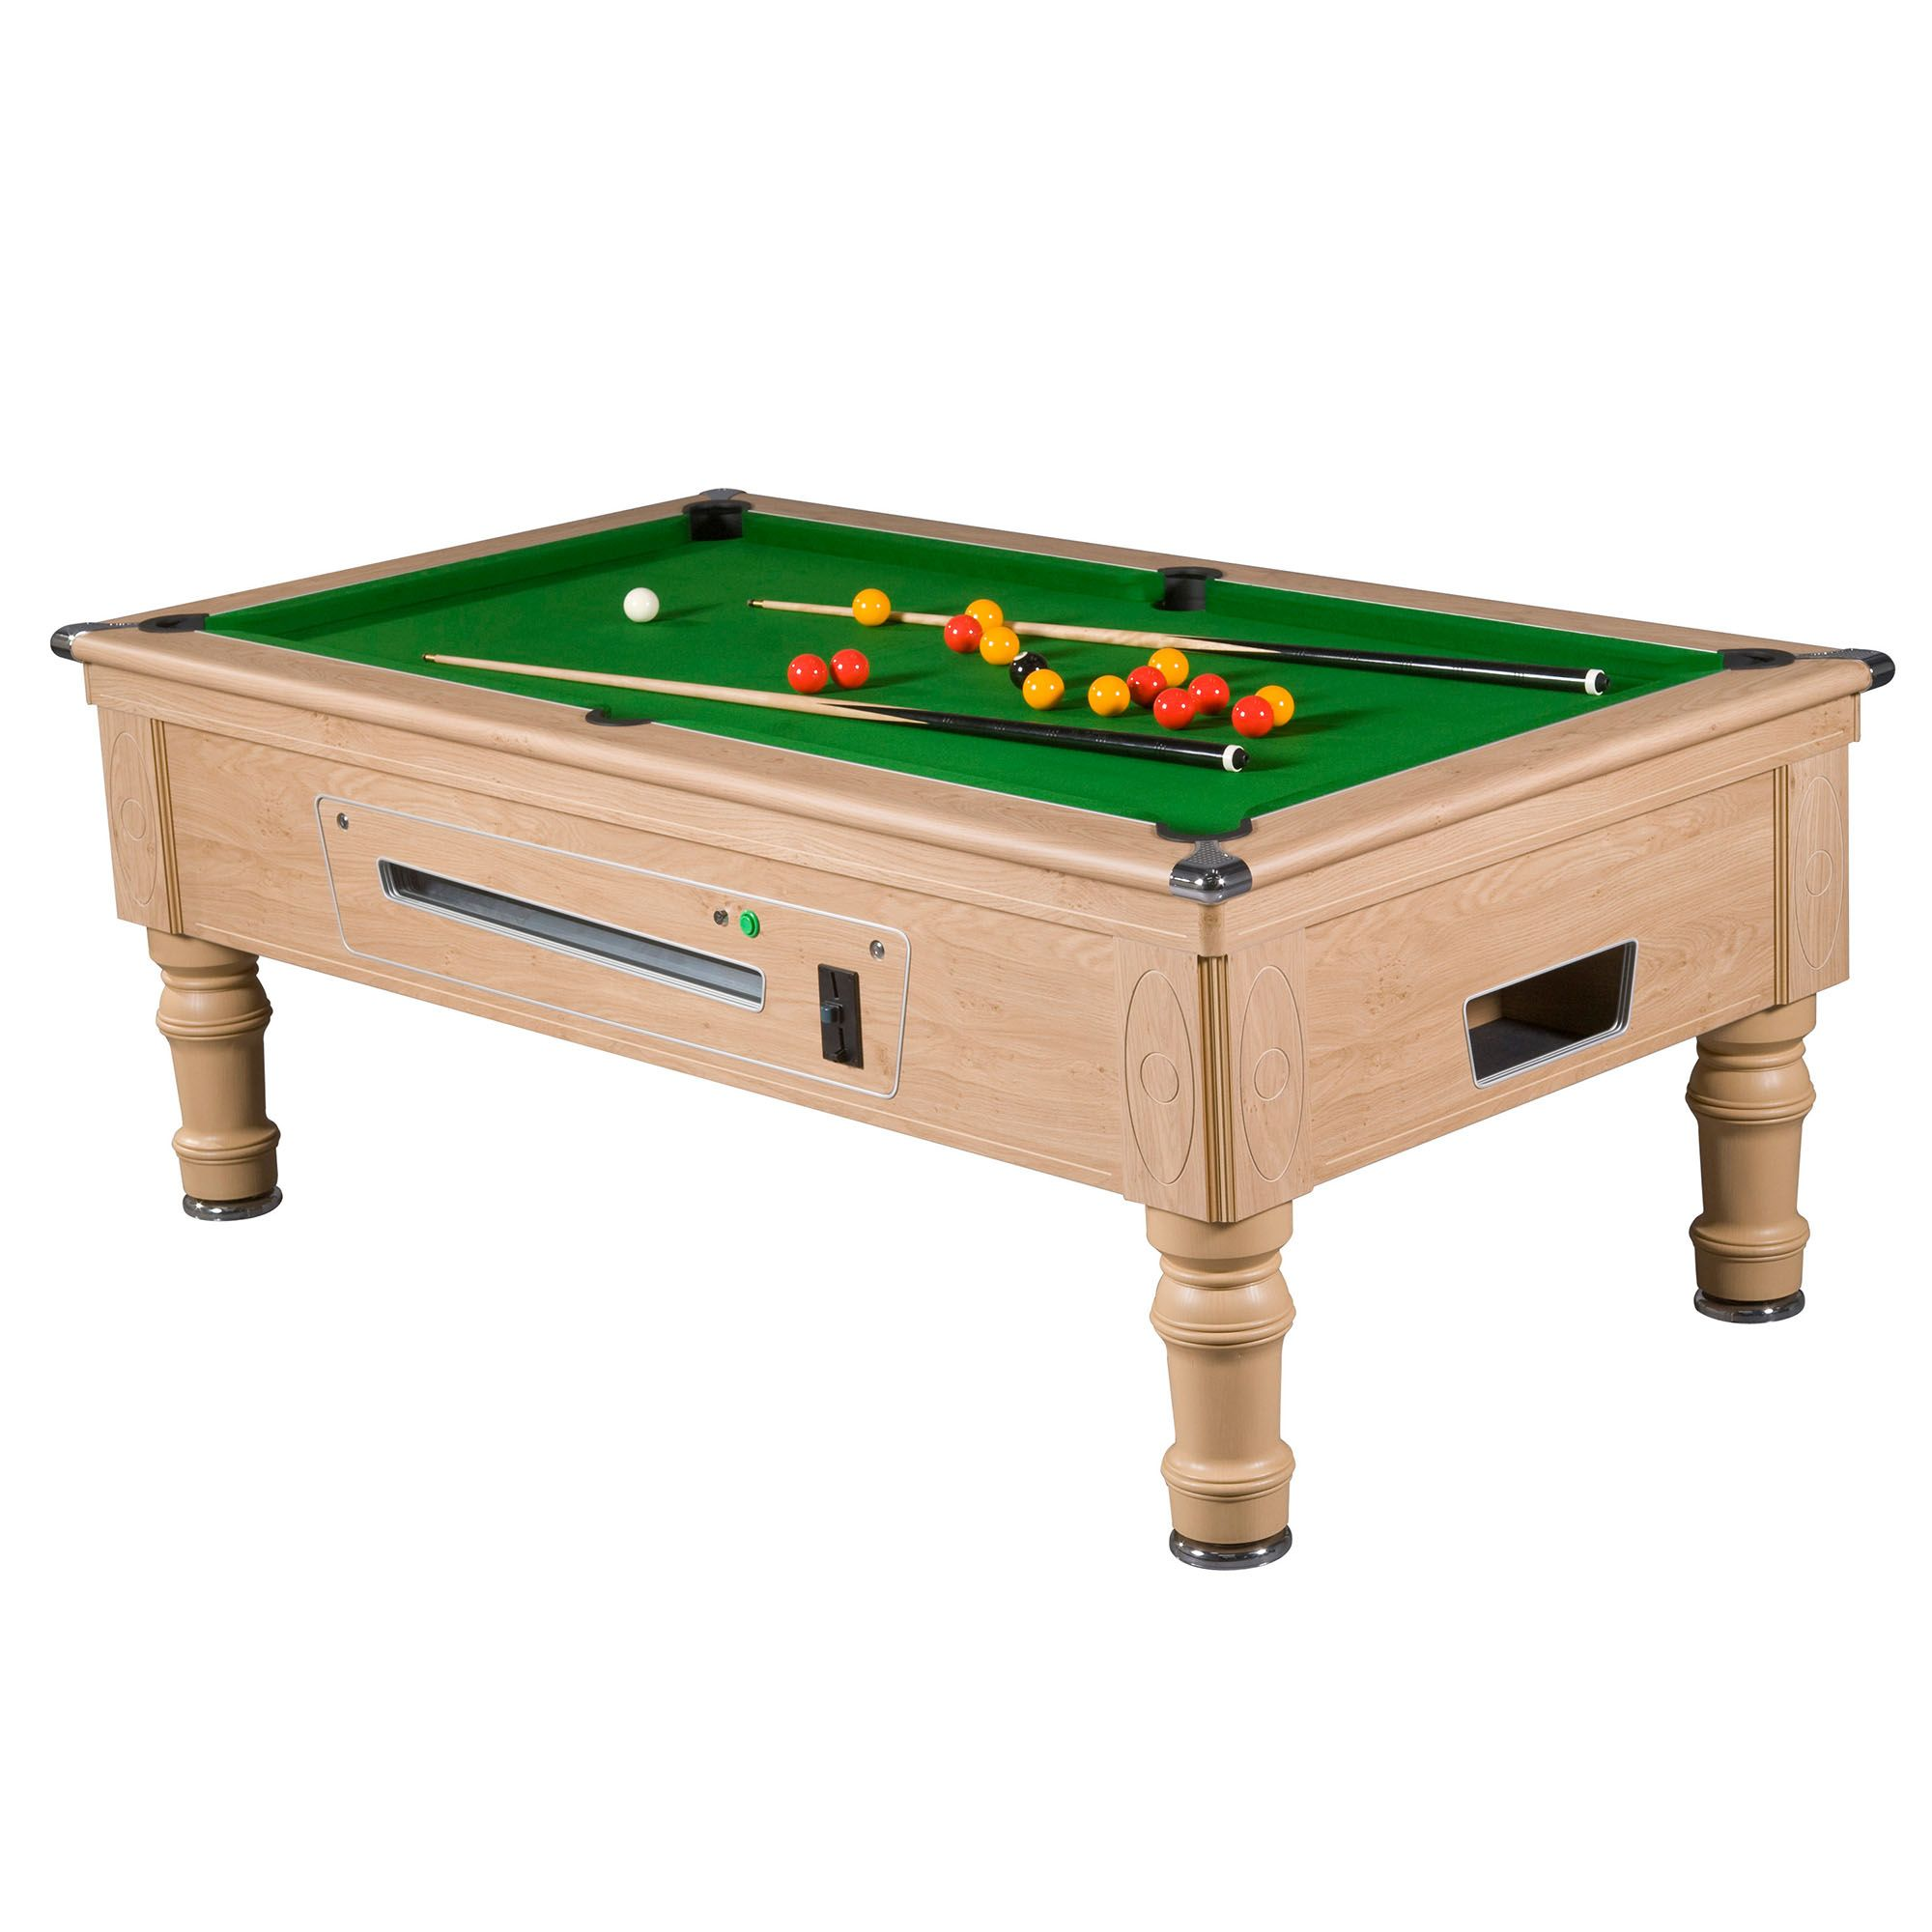 Mightymast 7ft prince slate bed english pool table - Pool table images ...